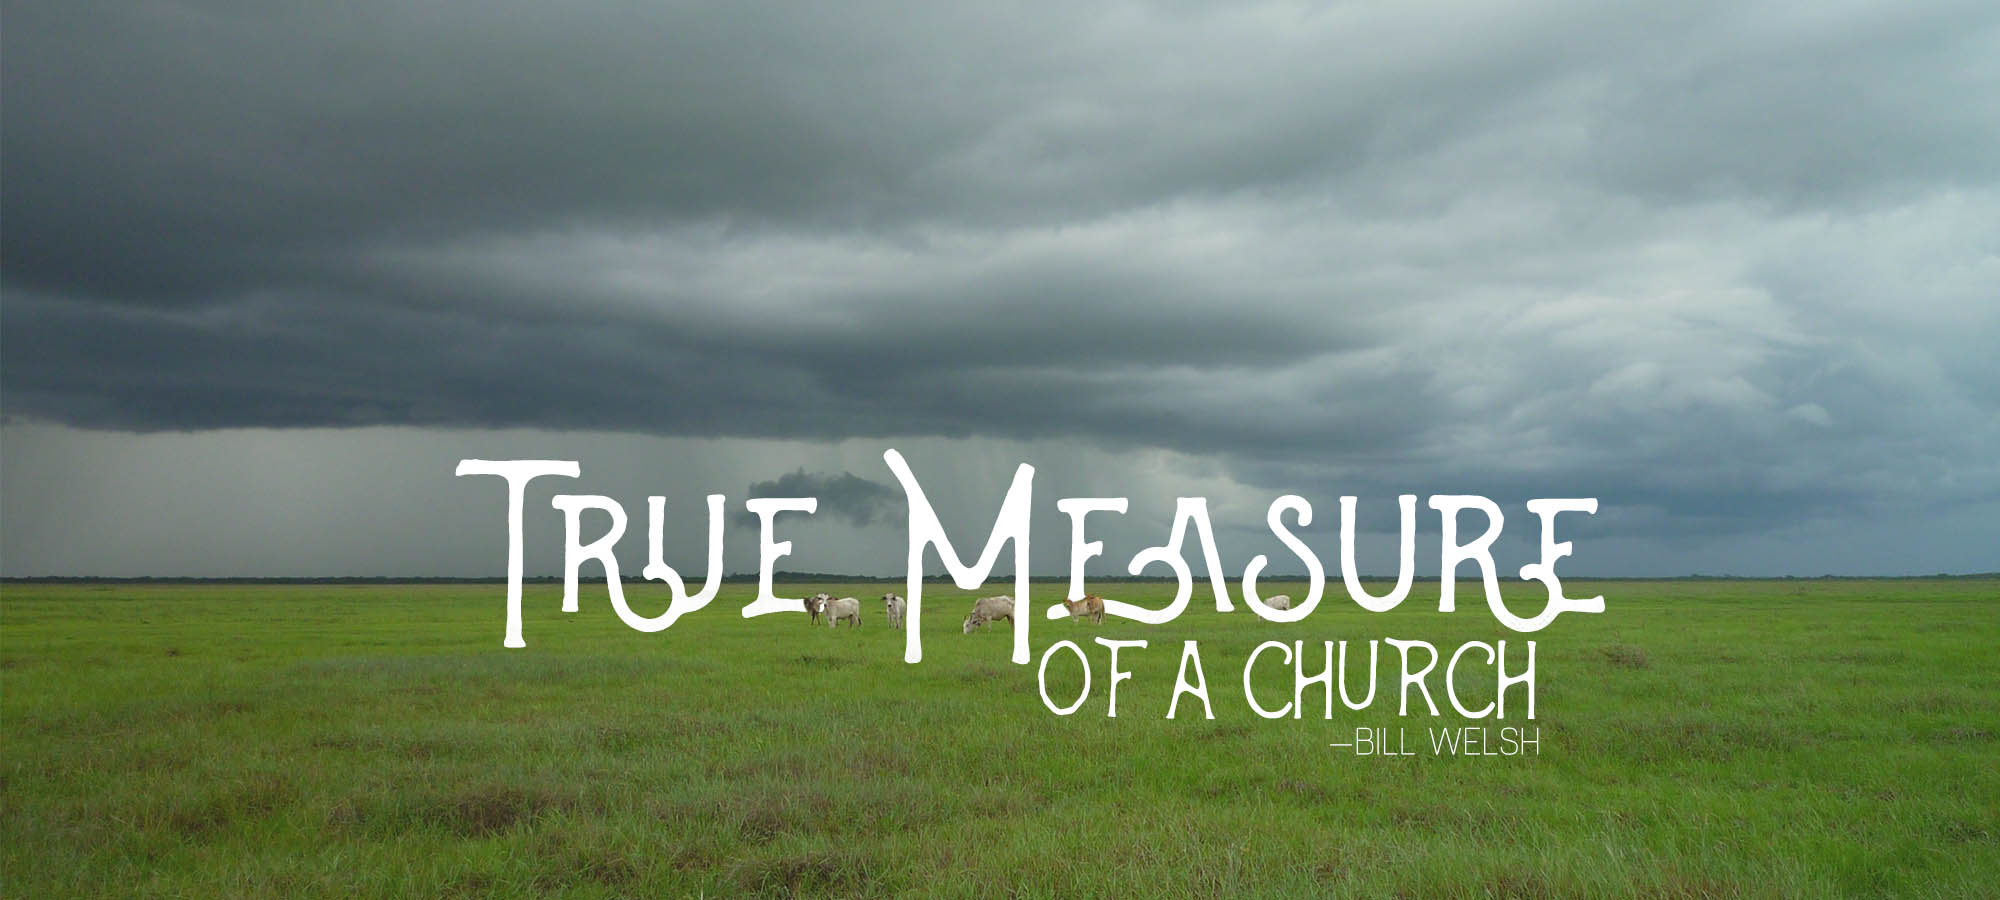 True Measure of a Church